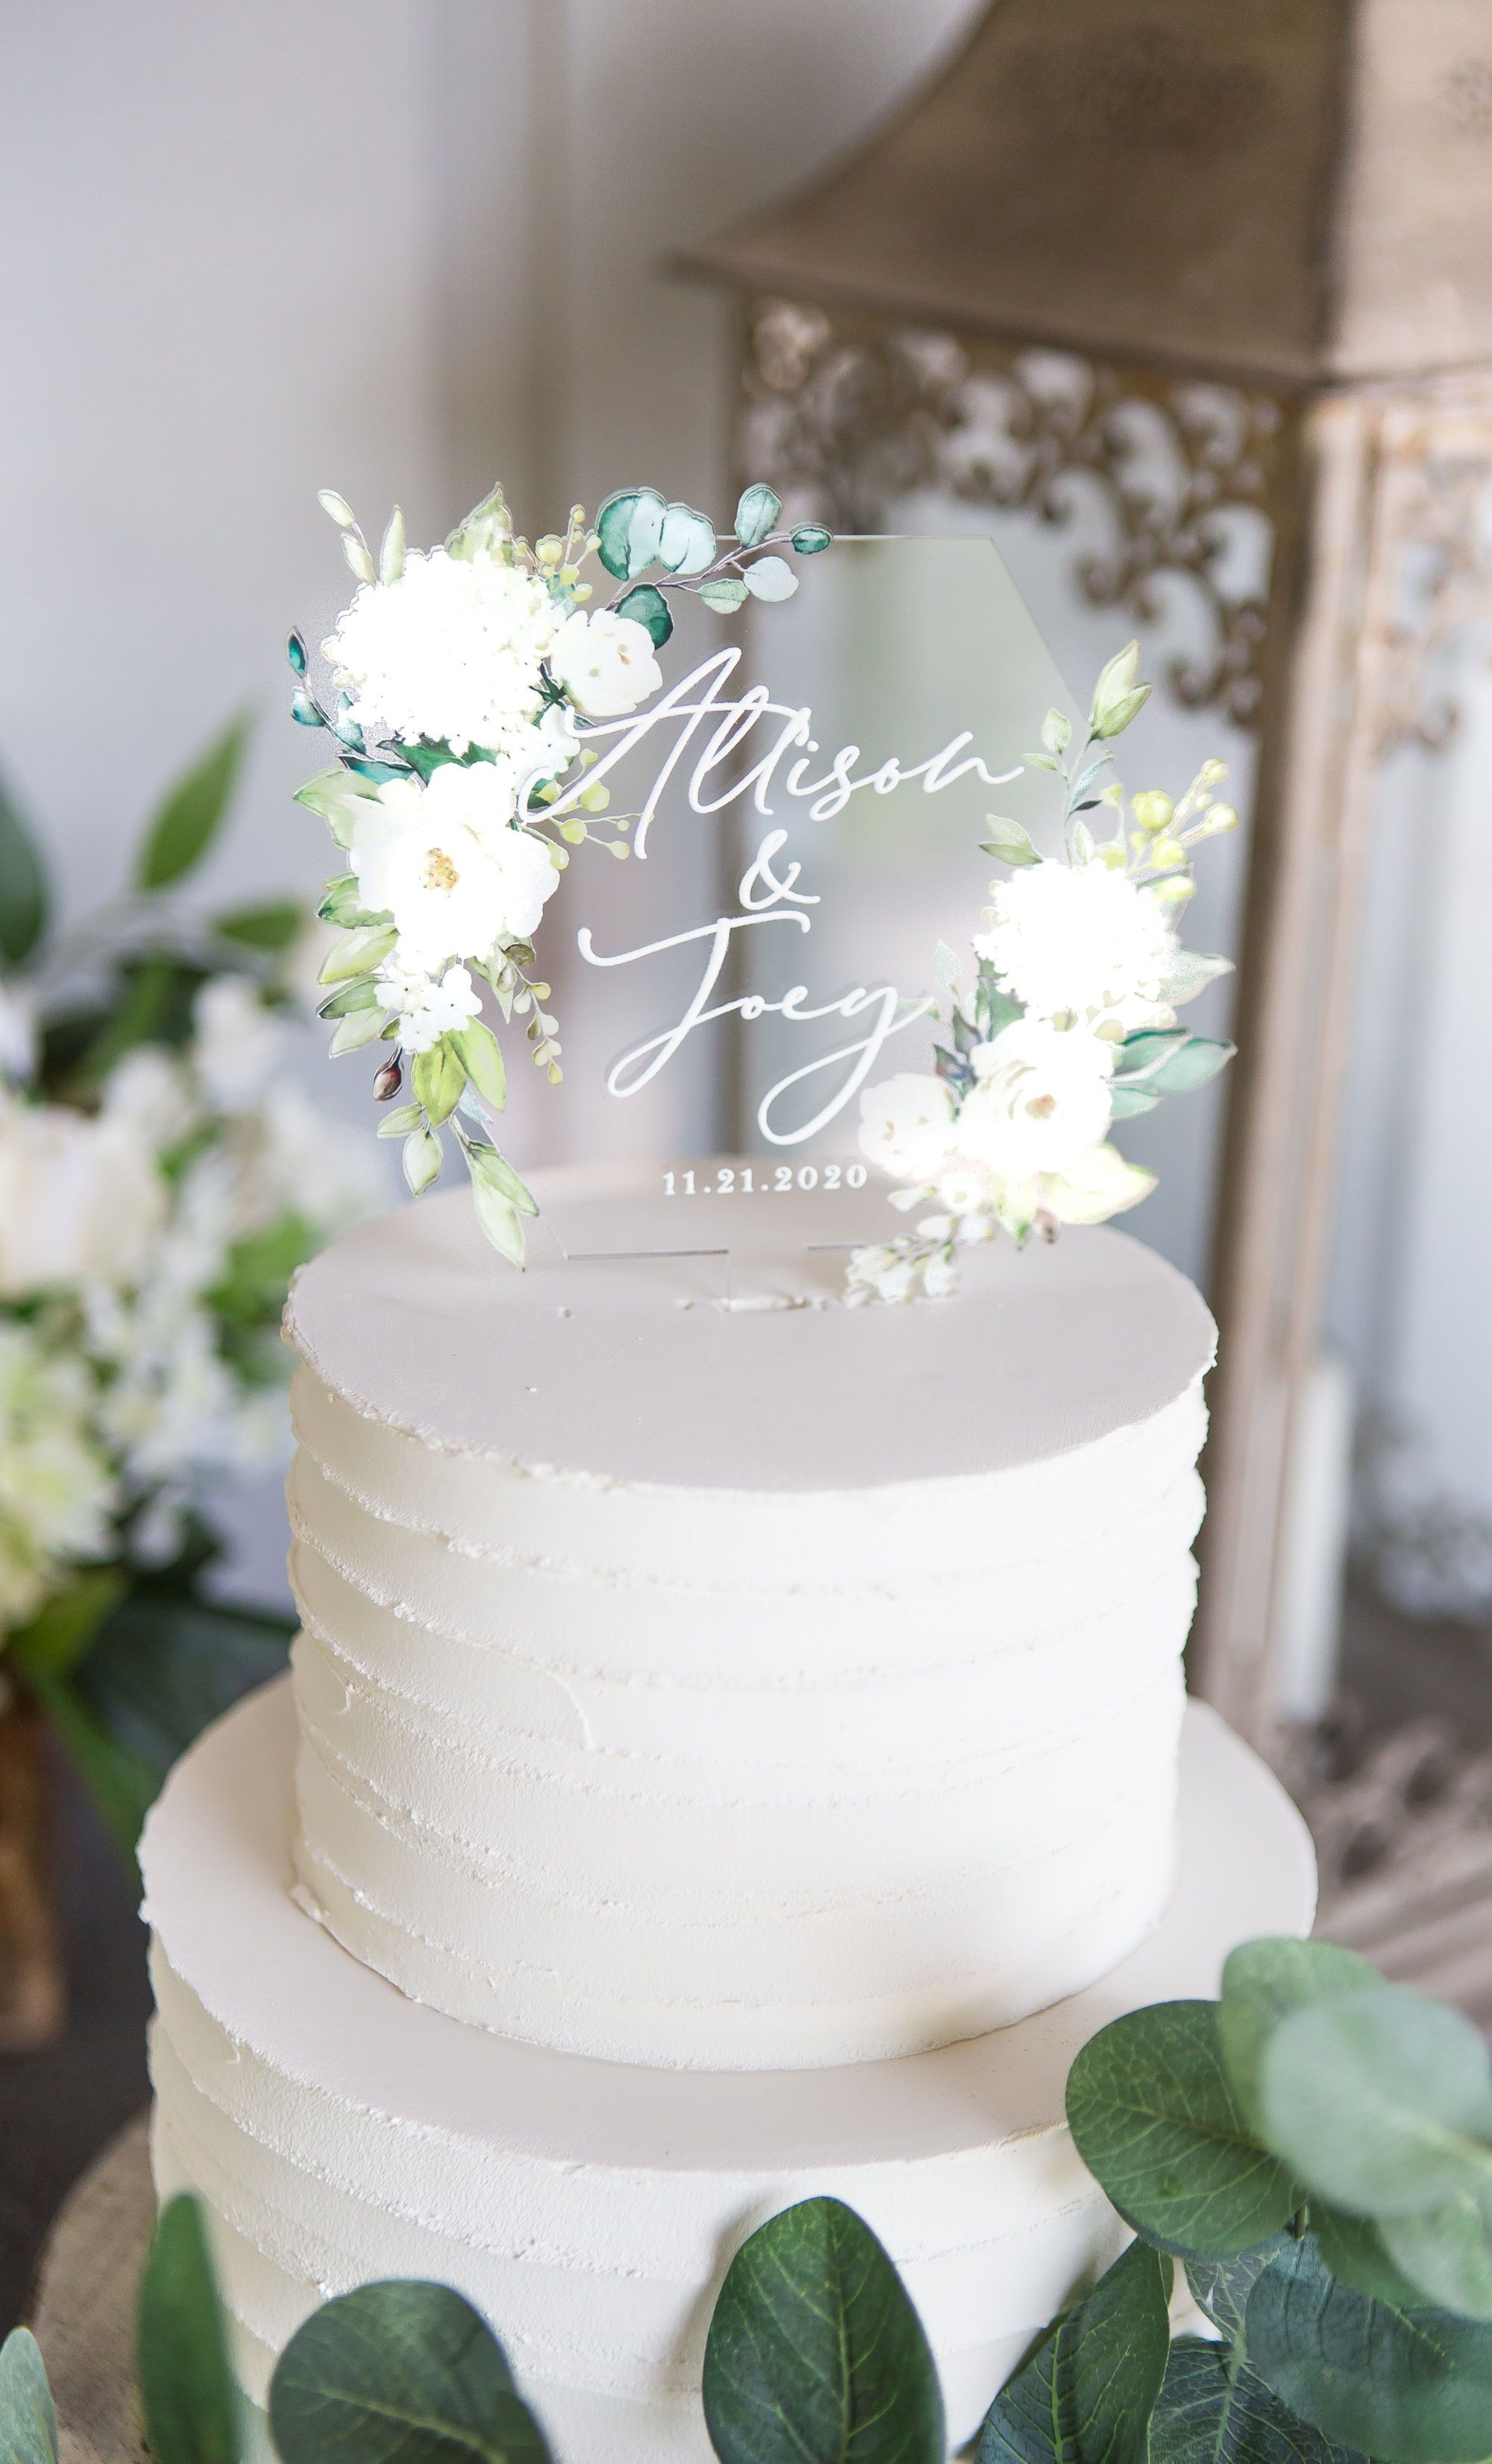 Wedding Cake Topper Clear Acrylic Floral Personalized Cake Etsy In 2020 Wedding Cake Toppers Personalized Wedding Cake Toppers Acrylic Cake Topper